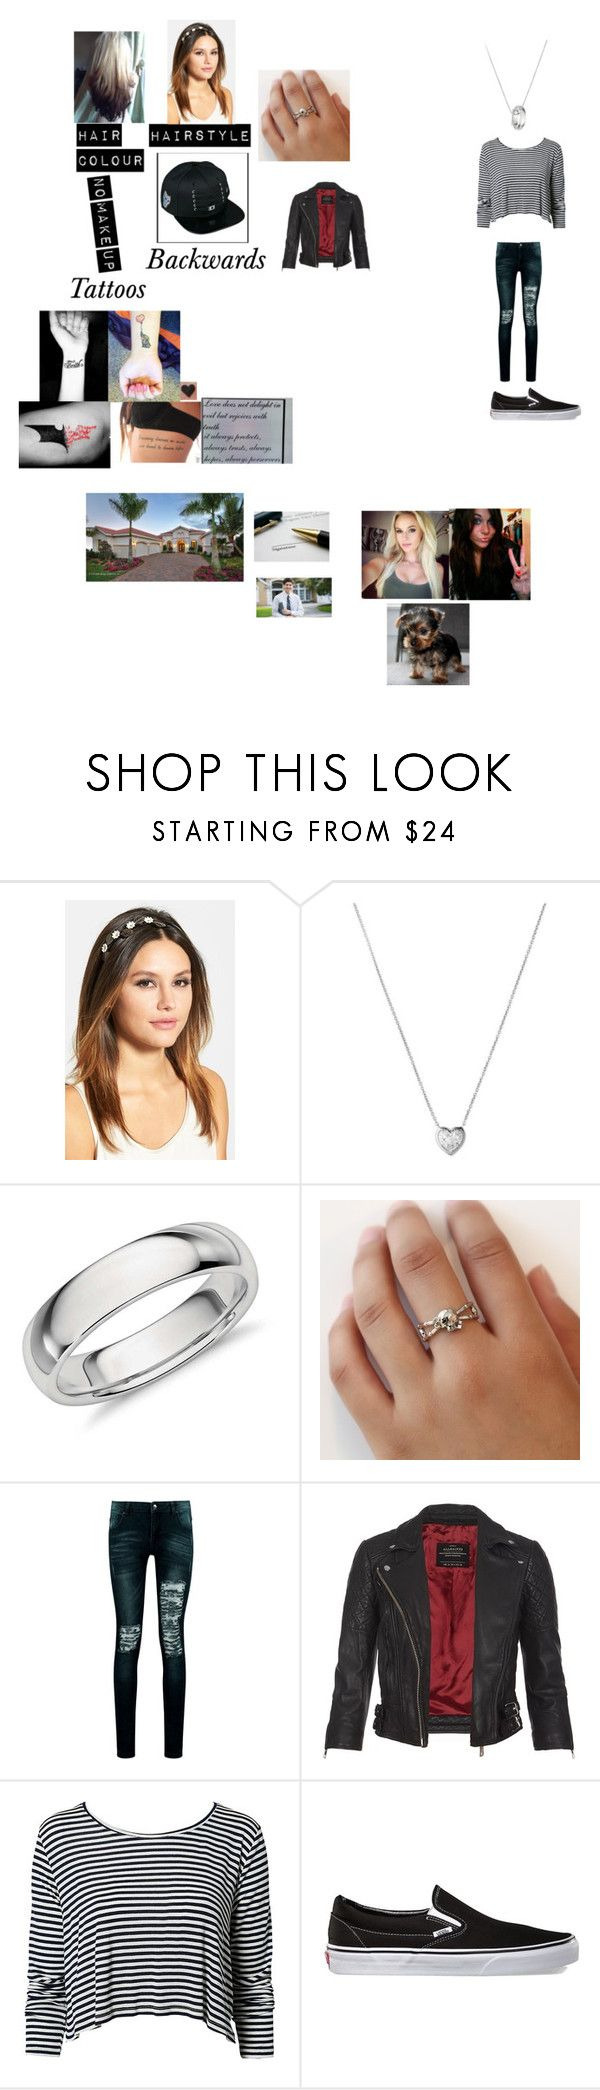 """""""Brianna~ Find The Perfect House In Orlando, Signing The Agreement (June 2015)"""" by wwetnagirl ❤ liked on Polyvore featuring L. Erickson, Links of London, Boohoo, AllSaints, NLY Trend, Vans and WWE"""